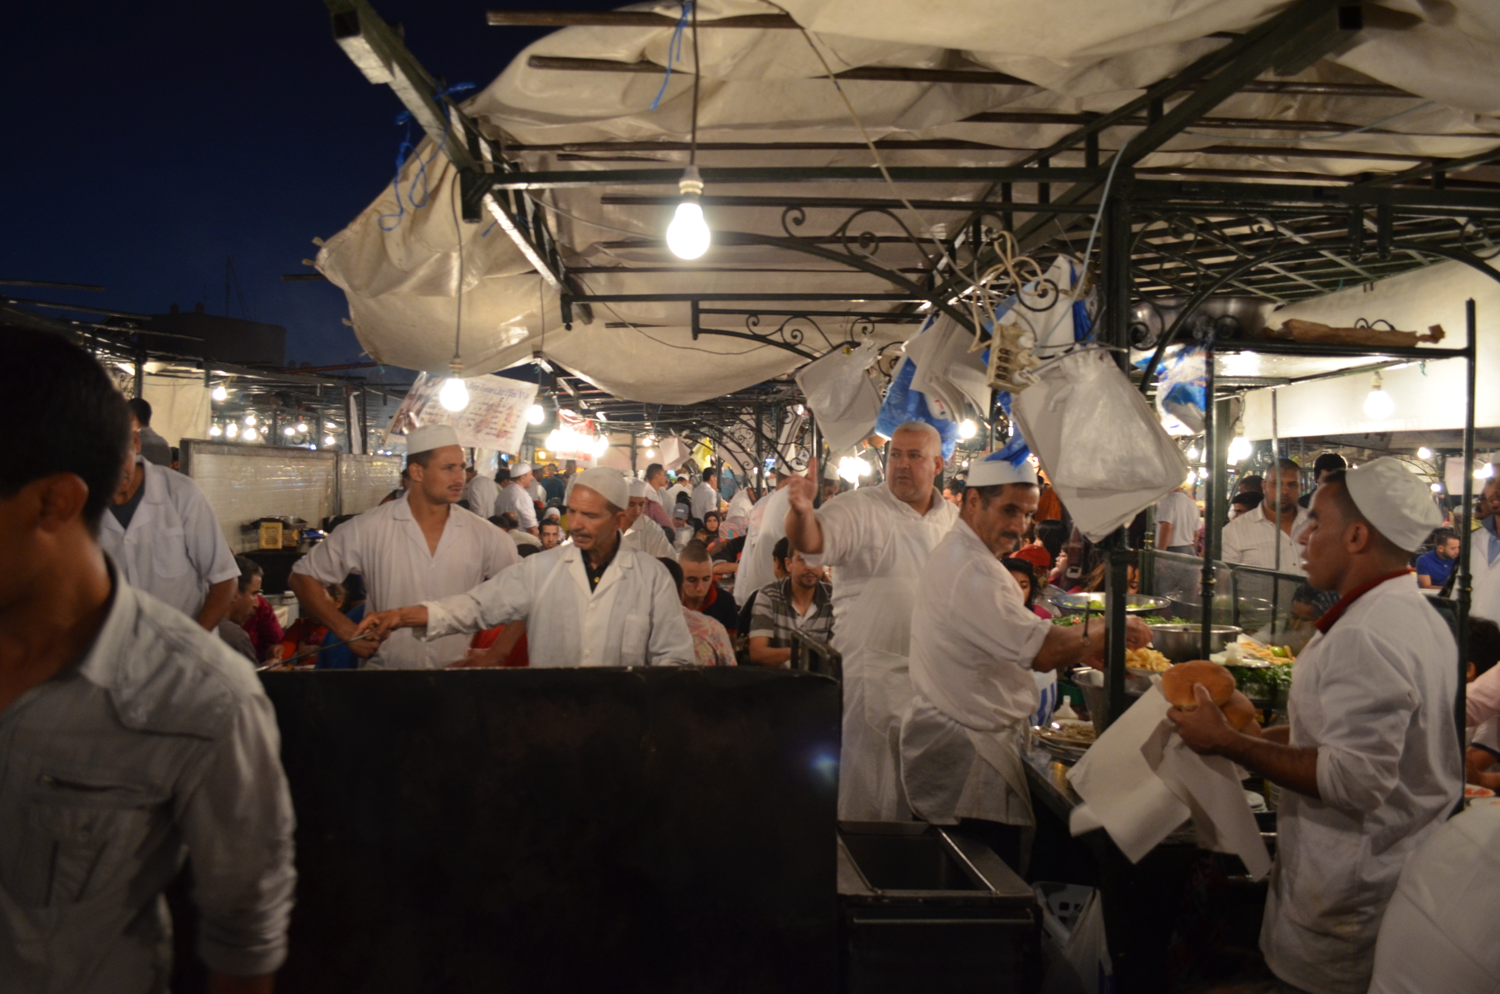 How many chefs? They are great fun.